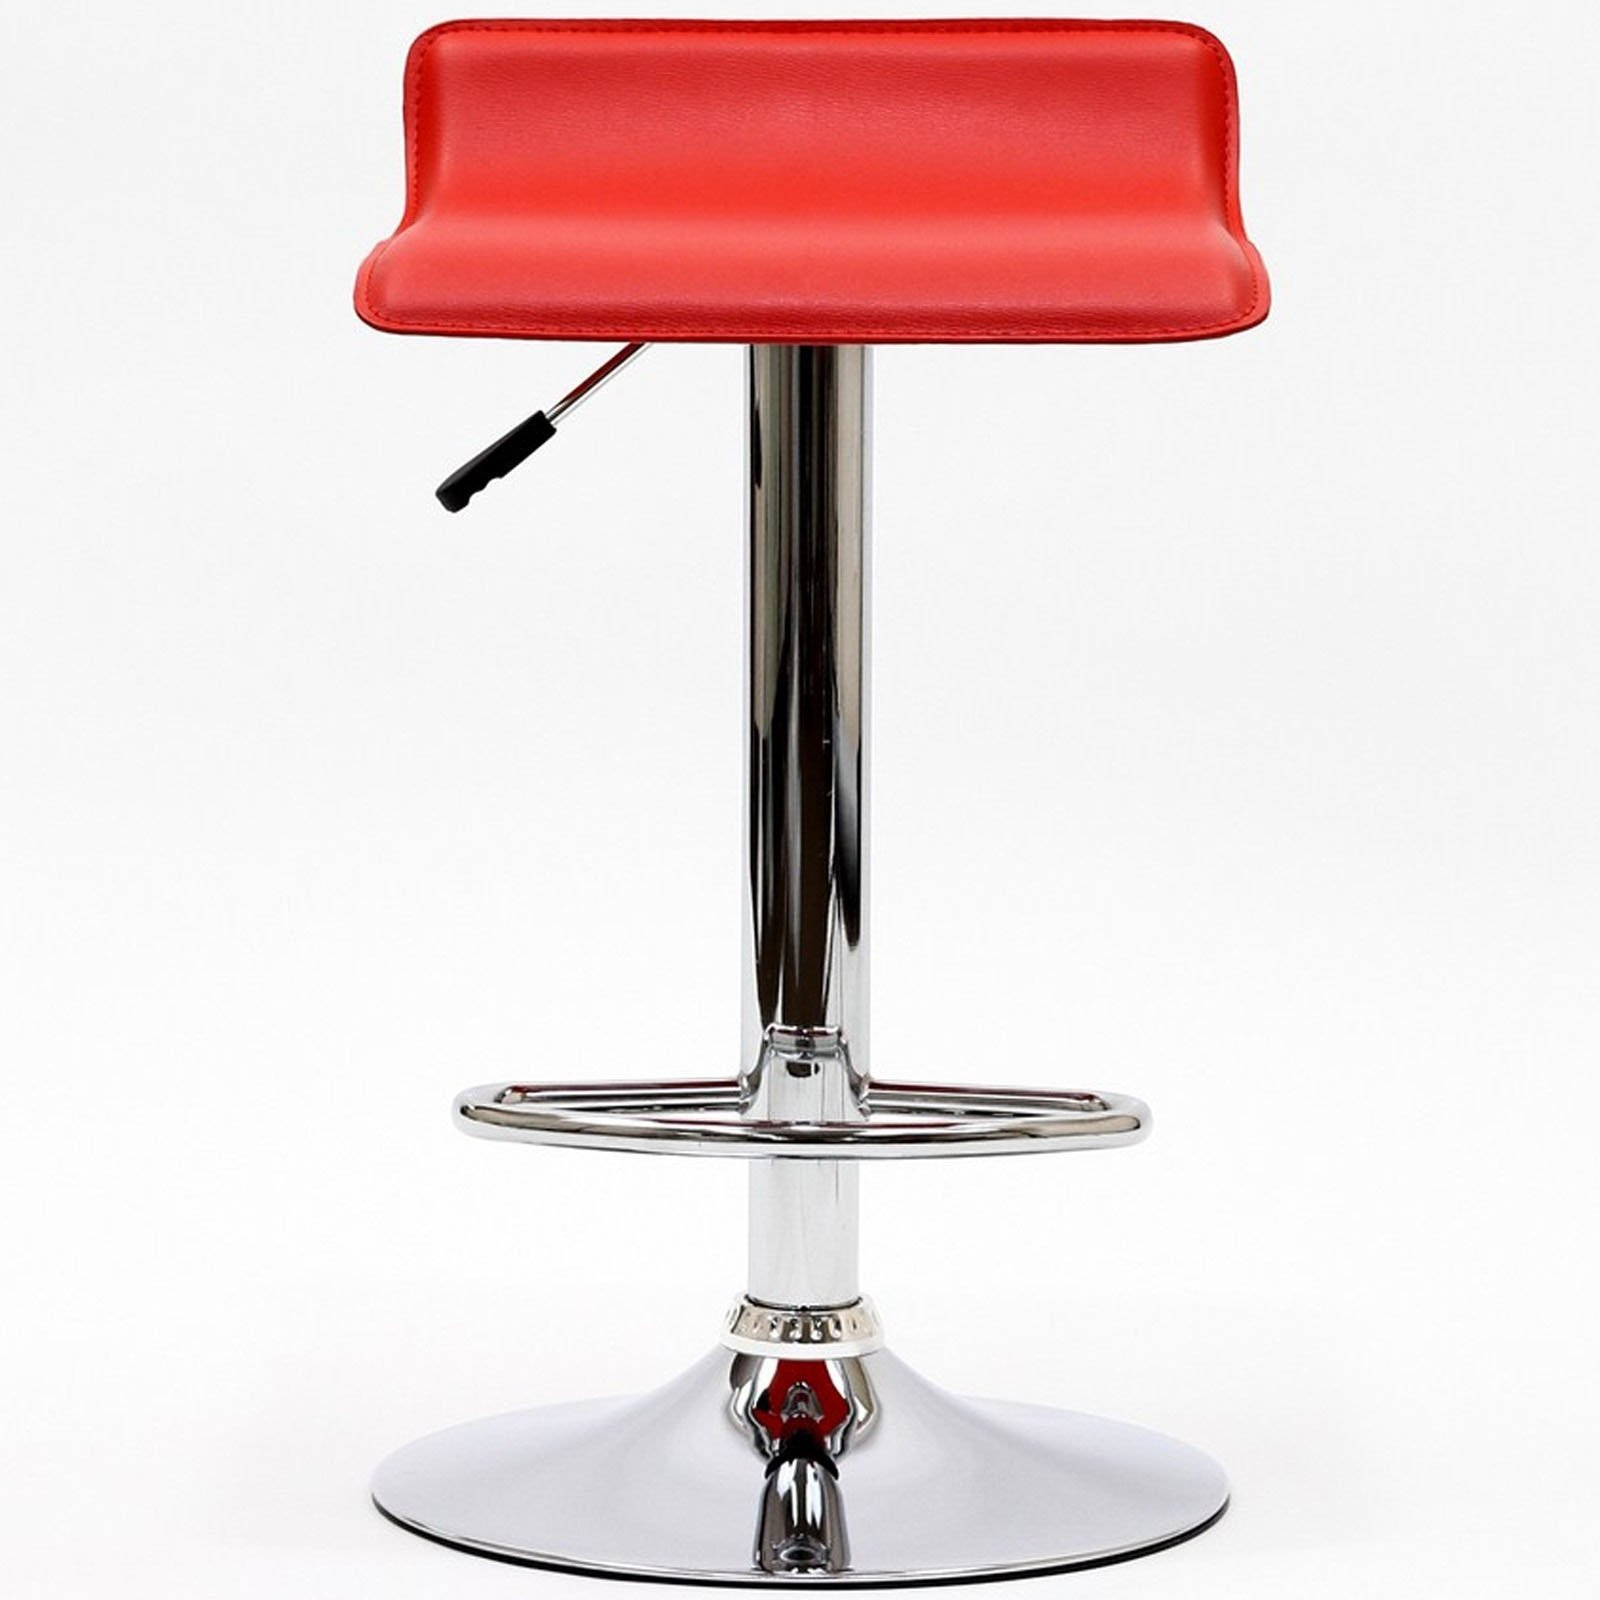 Modway Gloria Retro Modern Faux Leather Bar Stools in Red by Modway (Image #4)